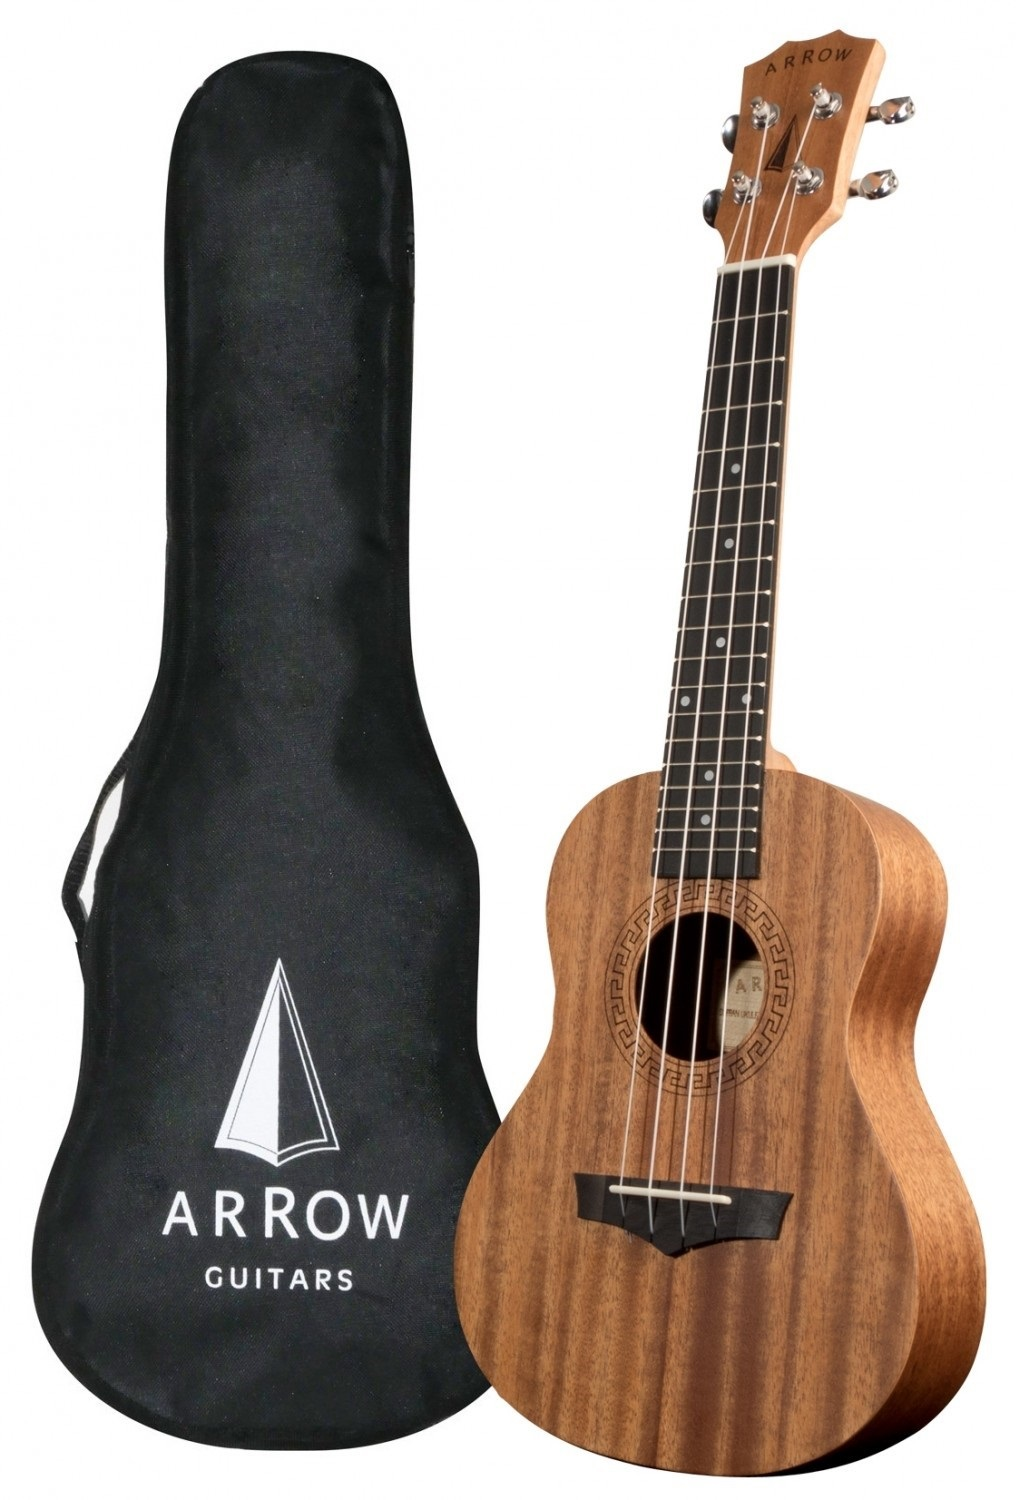 Arrow MH10 - Ukulele koncertowe